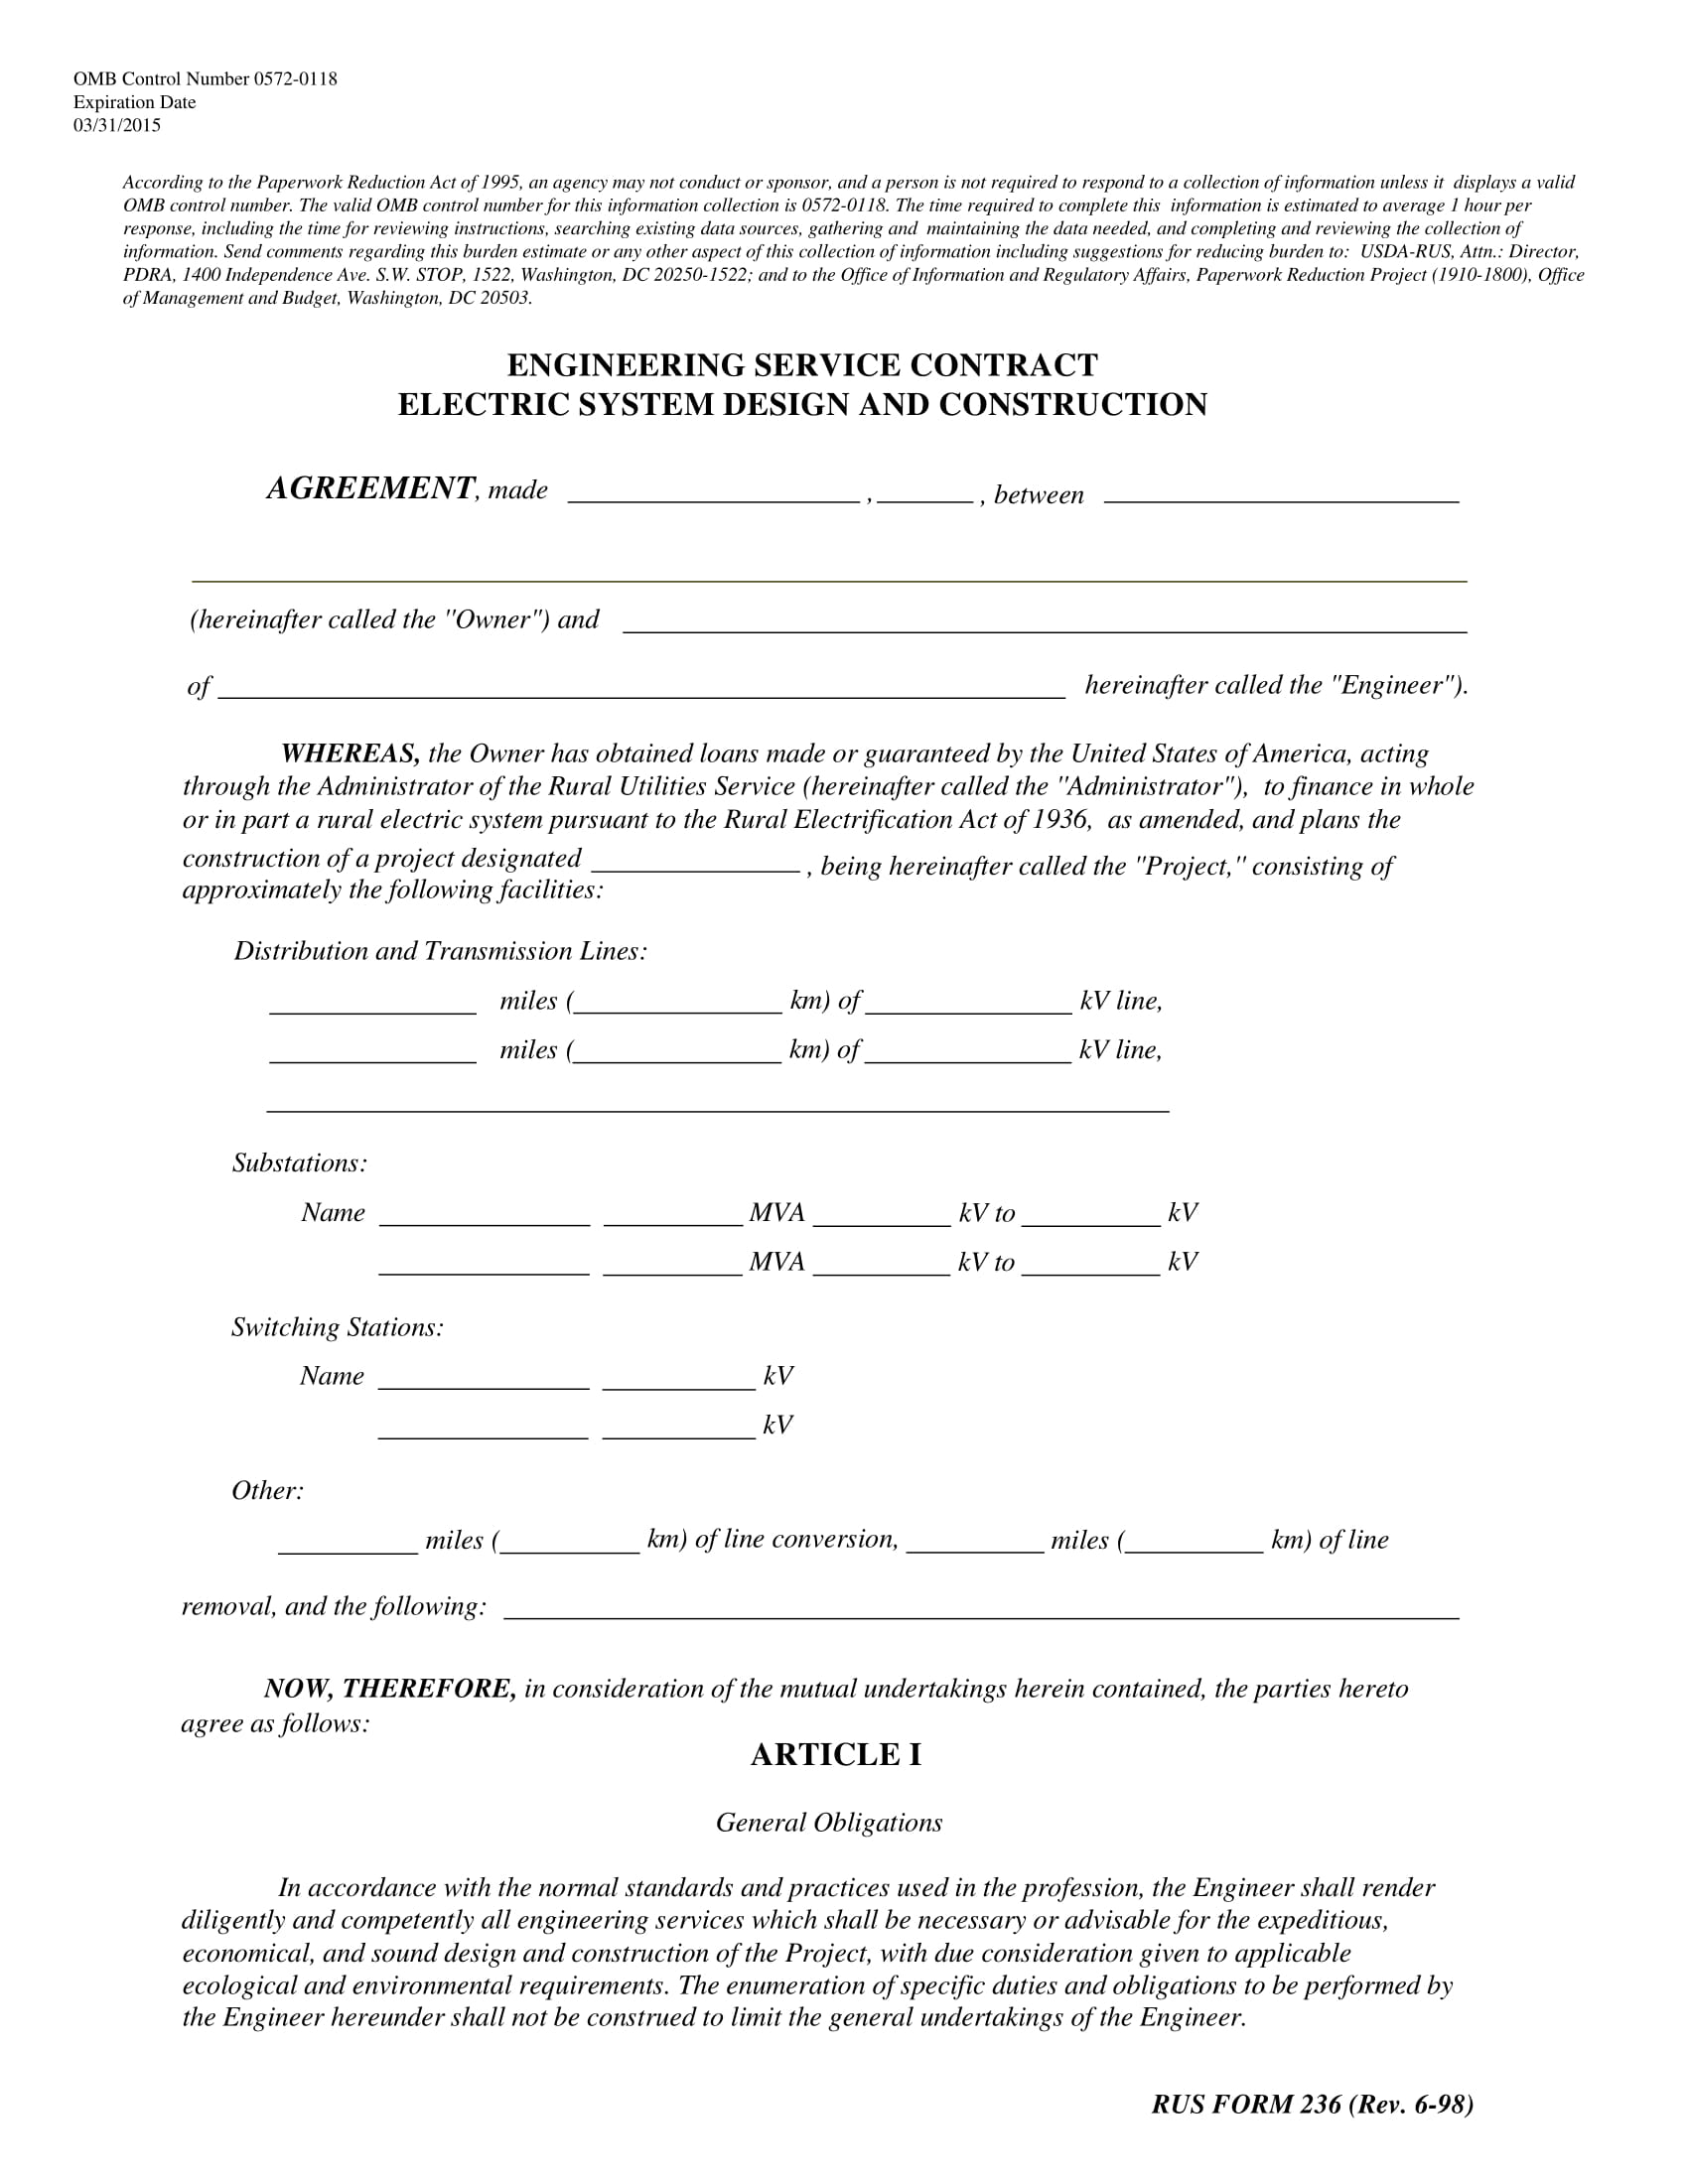 10 Electrical Contract Template Examples - PDF